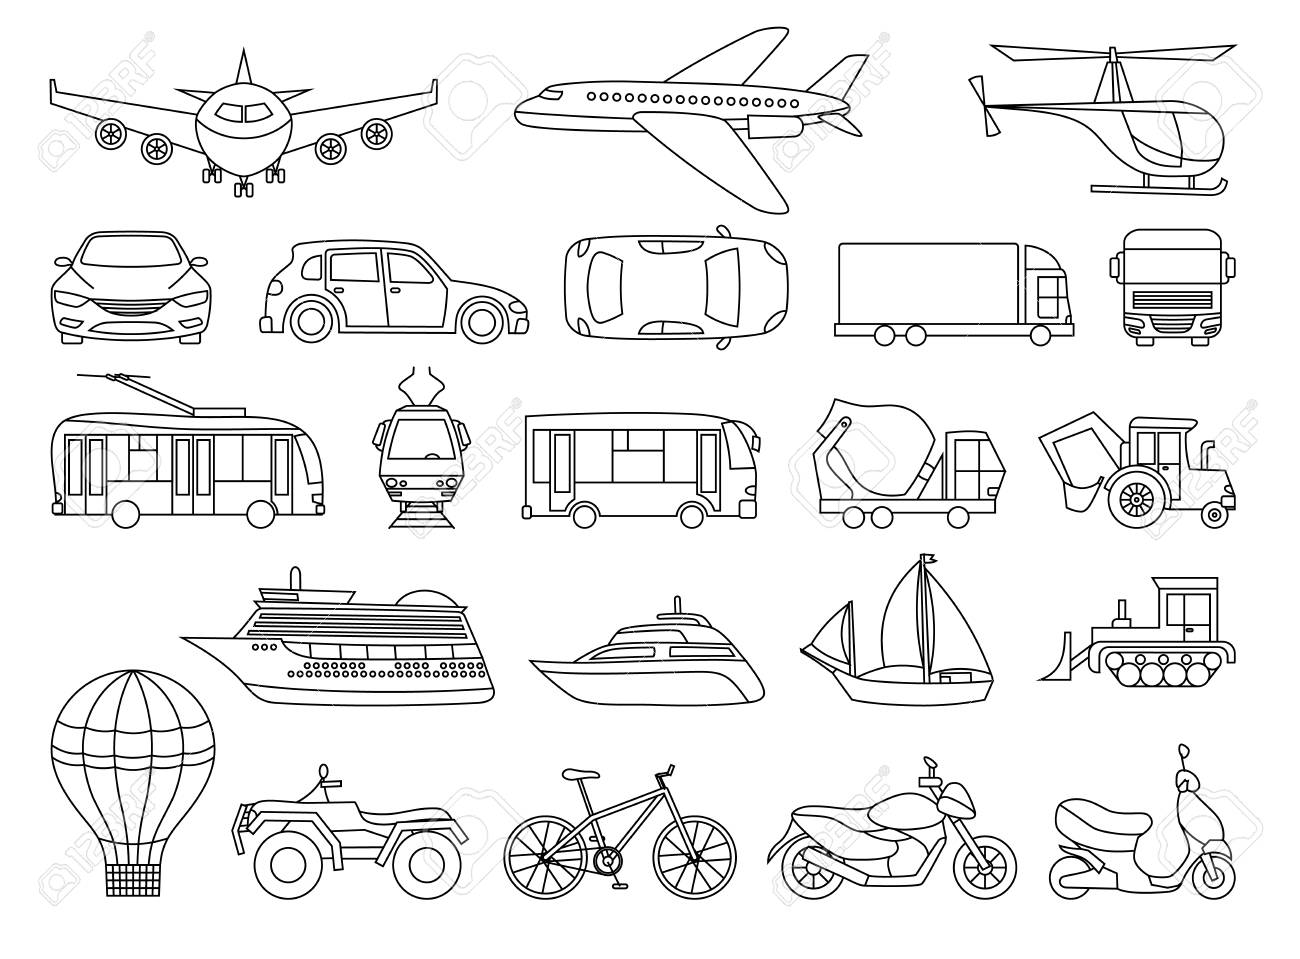 Toy Transport Set To Be Colored Coloring Book To Educate Kids Royalty Free Cliparts Vectors And Stock Illustration Image 87899294